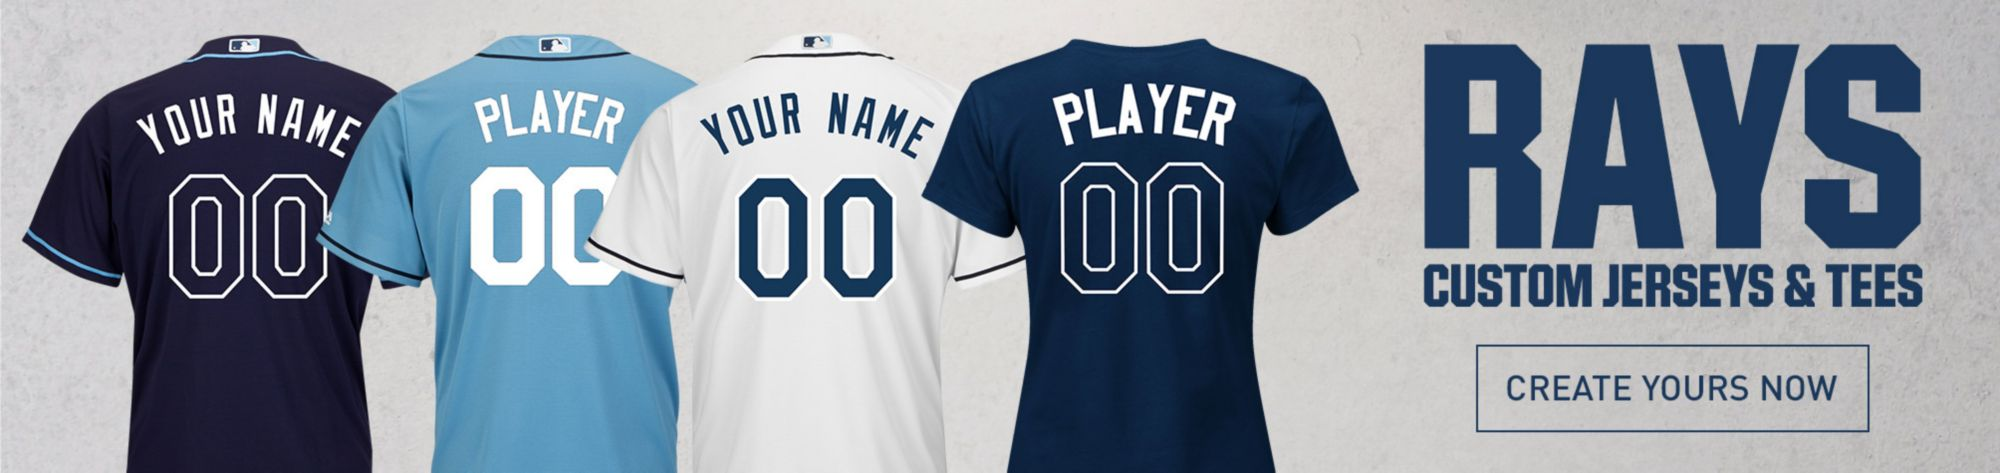 Tampa Bay Rays Apparel & Gear